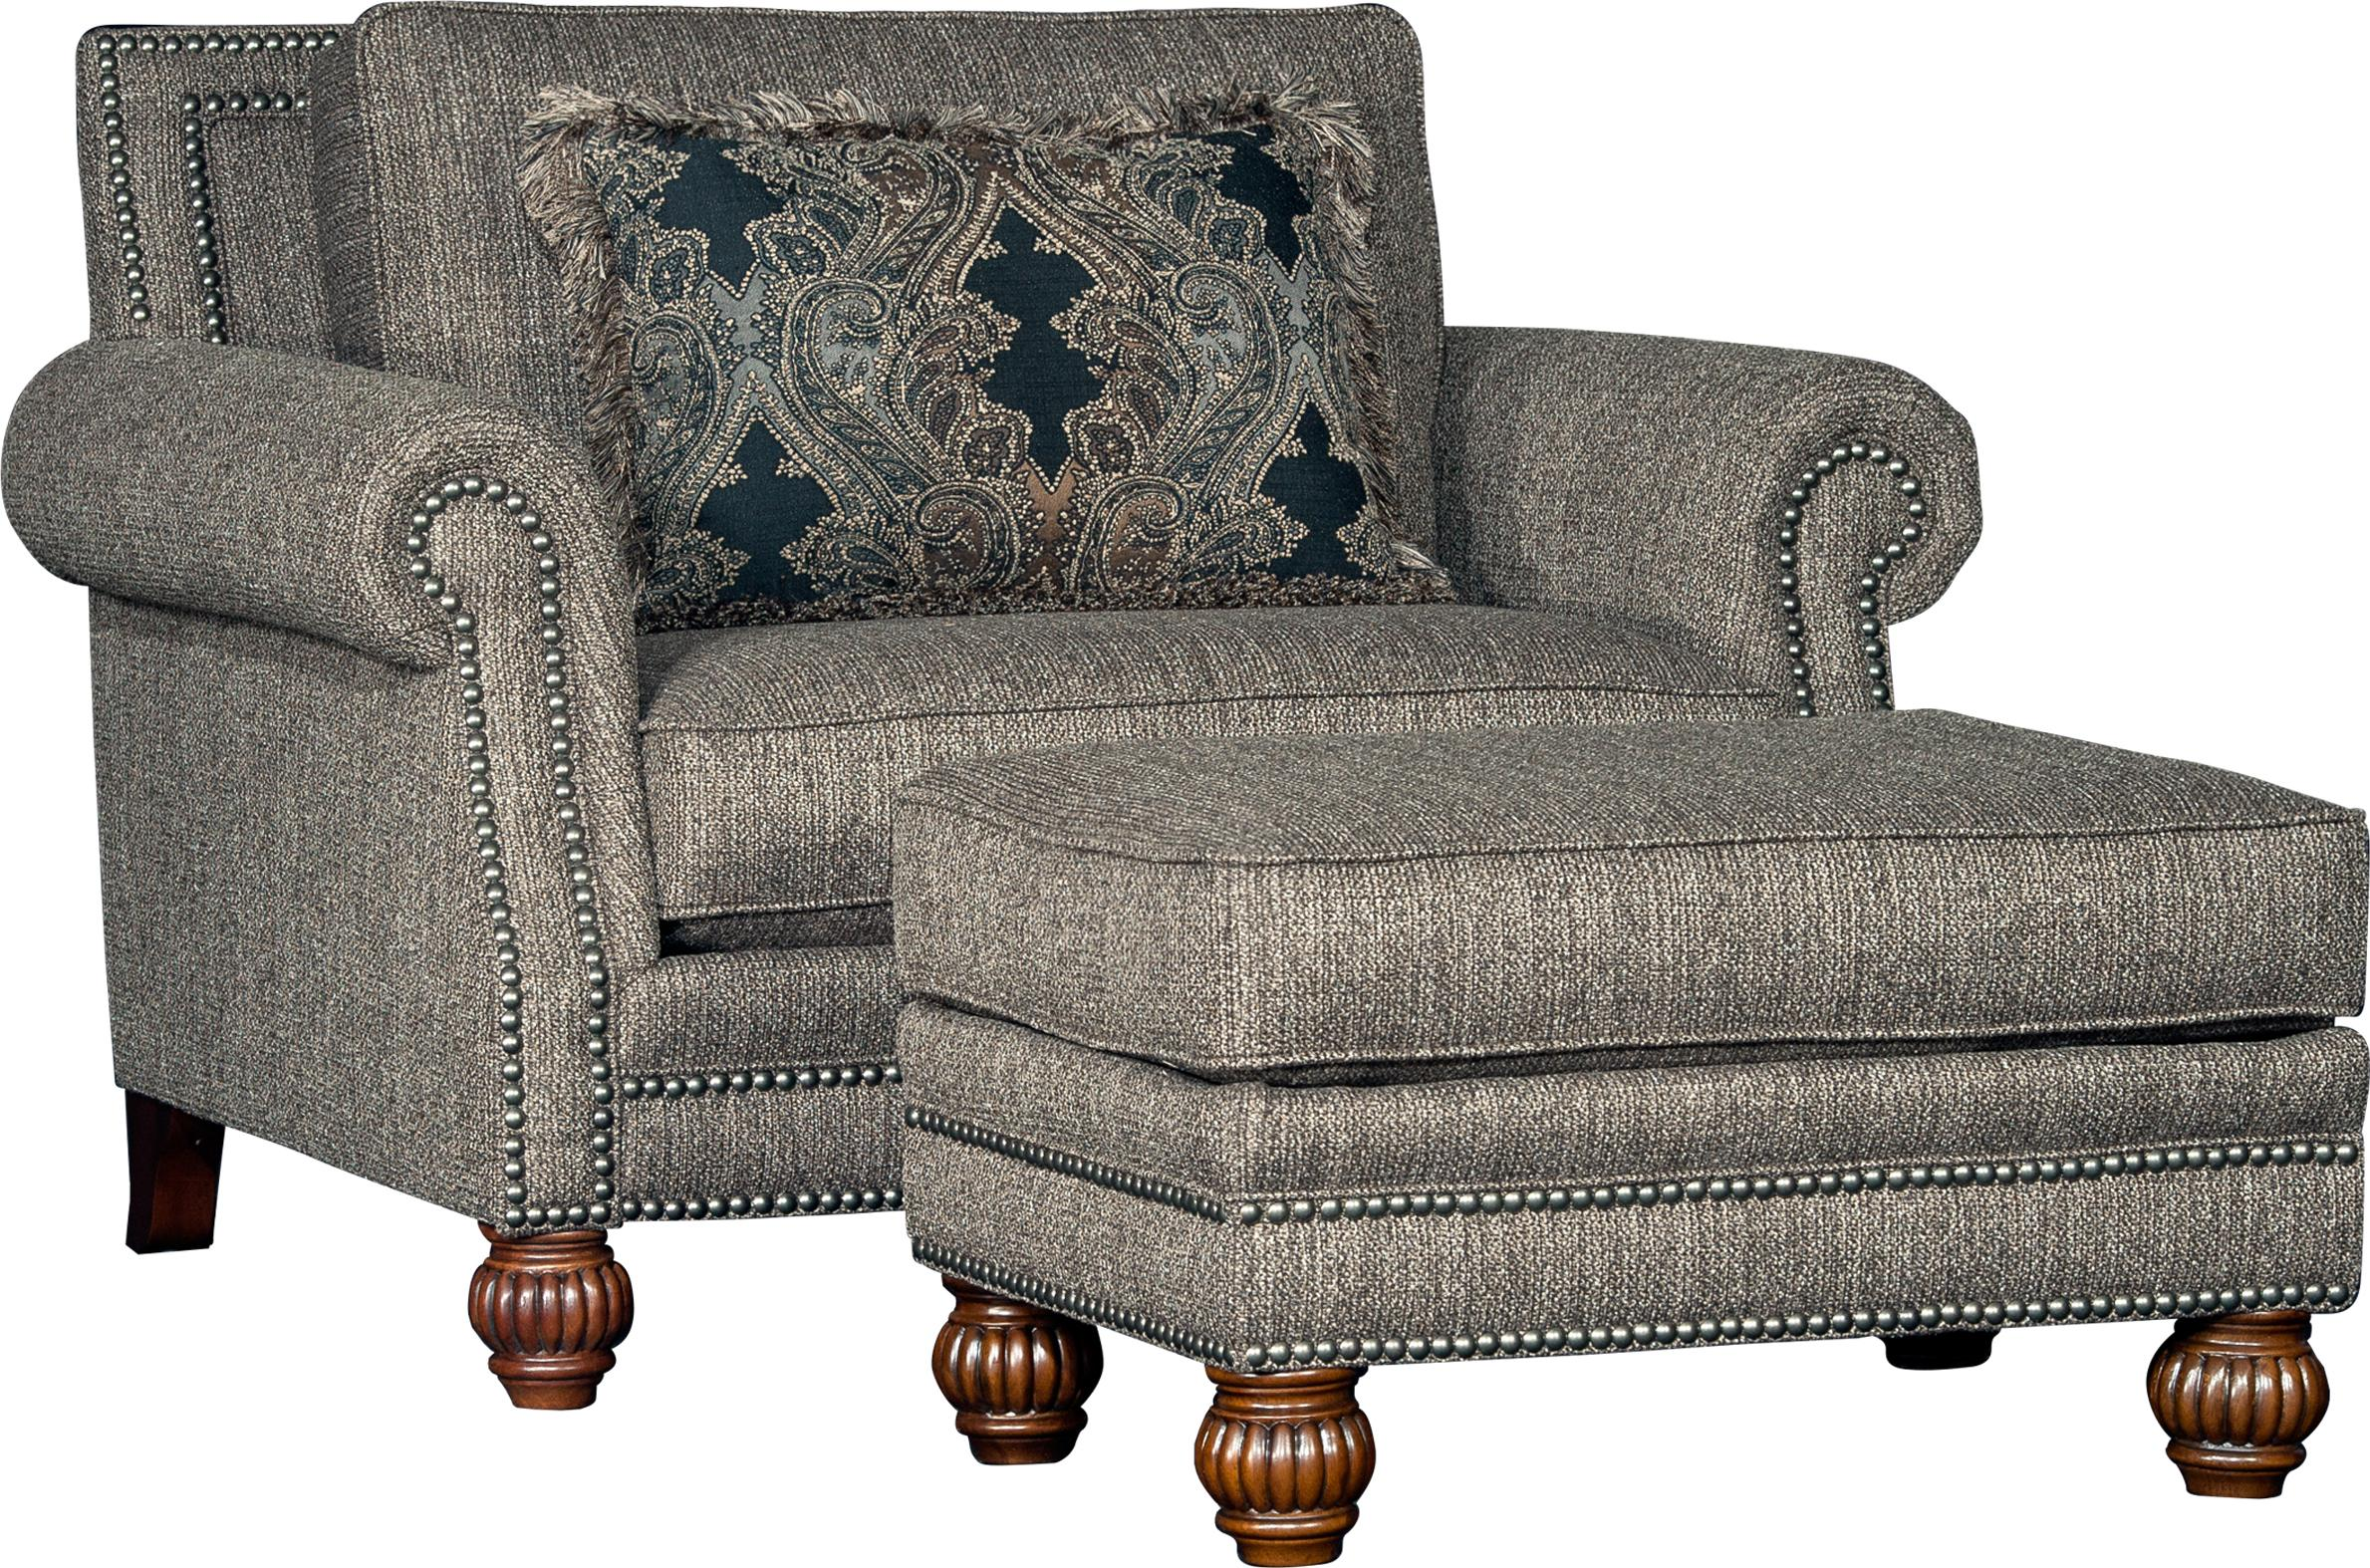 4300 Mayo Traditional Chair and Ottoman Set by Mayo at Wilson's Furniture